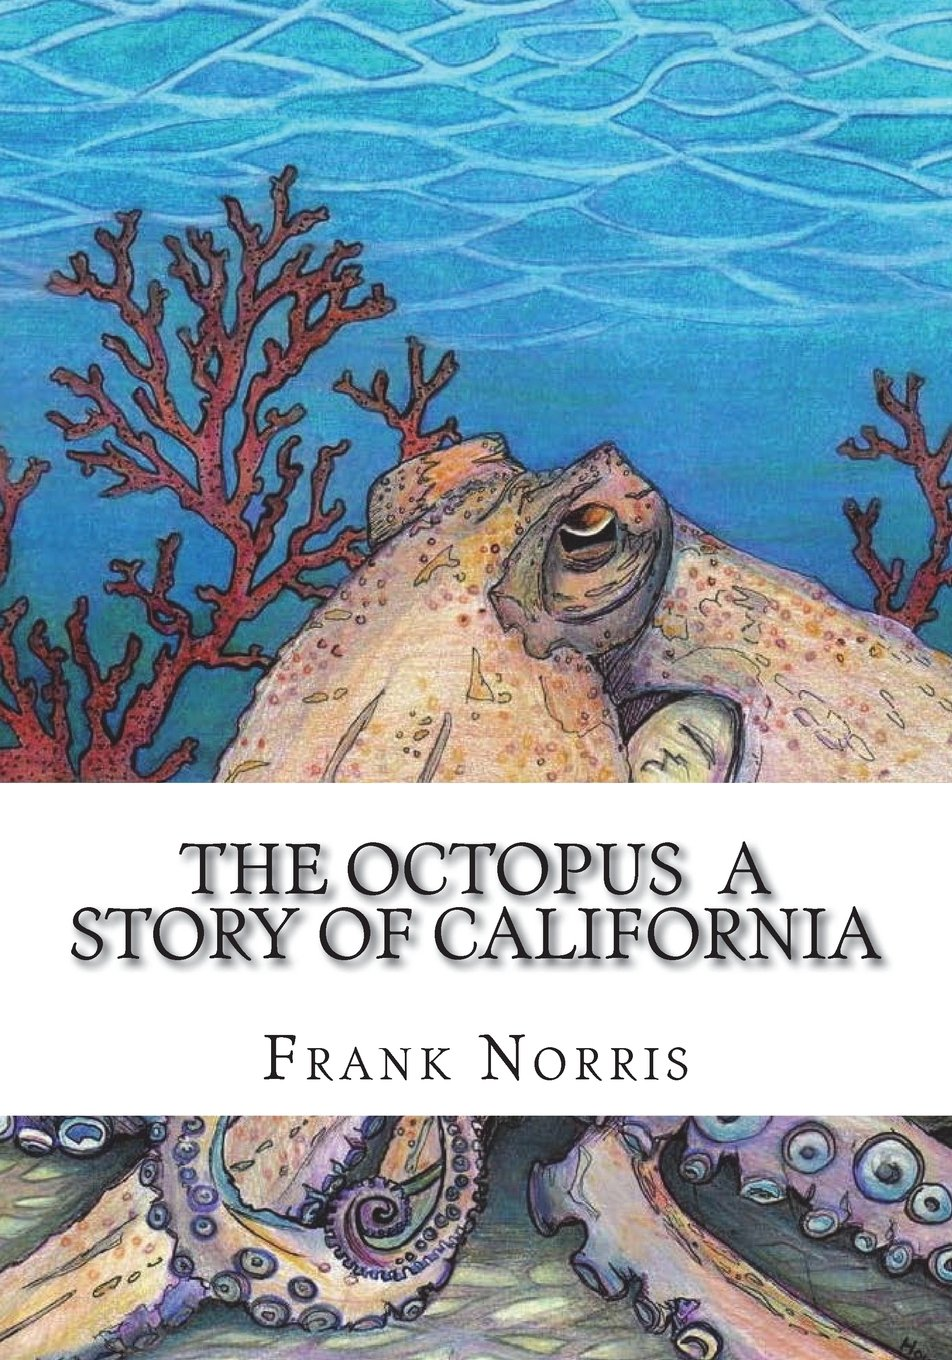 Download The Octopus A Story of California Text fb2 ebook